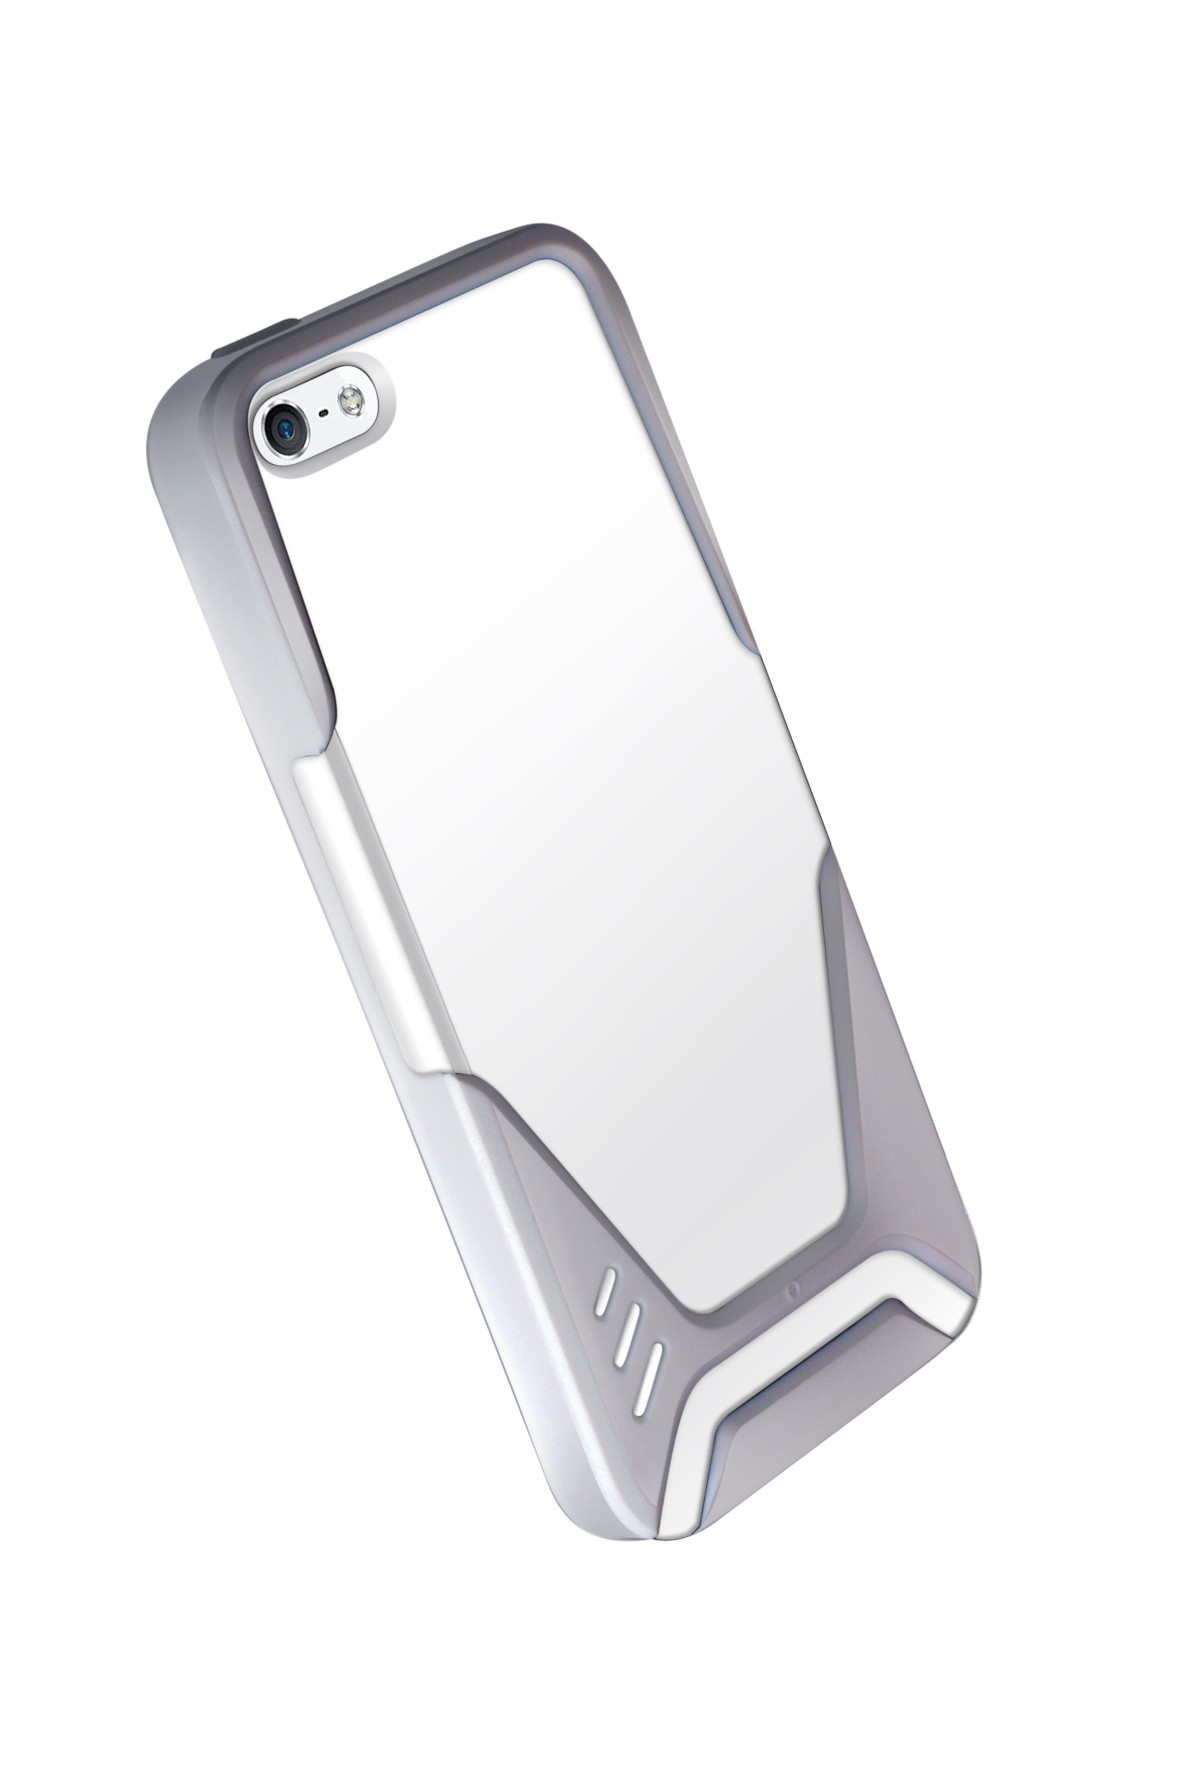 Ozone Visor Pro iPhone 5 Cover White Grey (HT-IP5-02-WG)